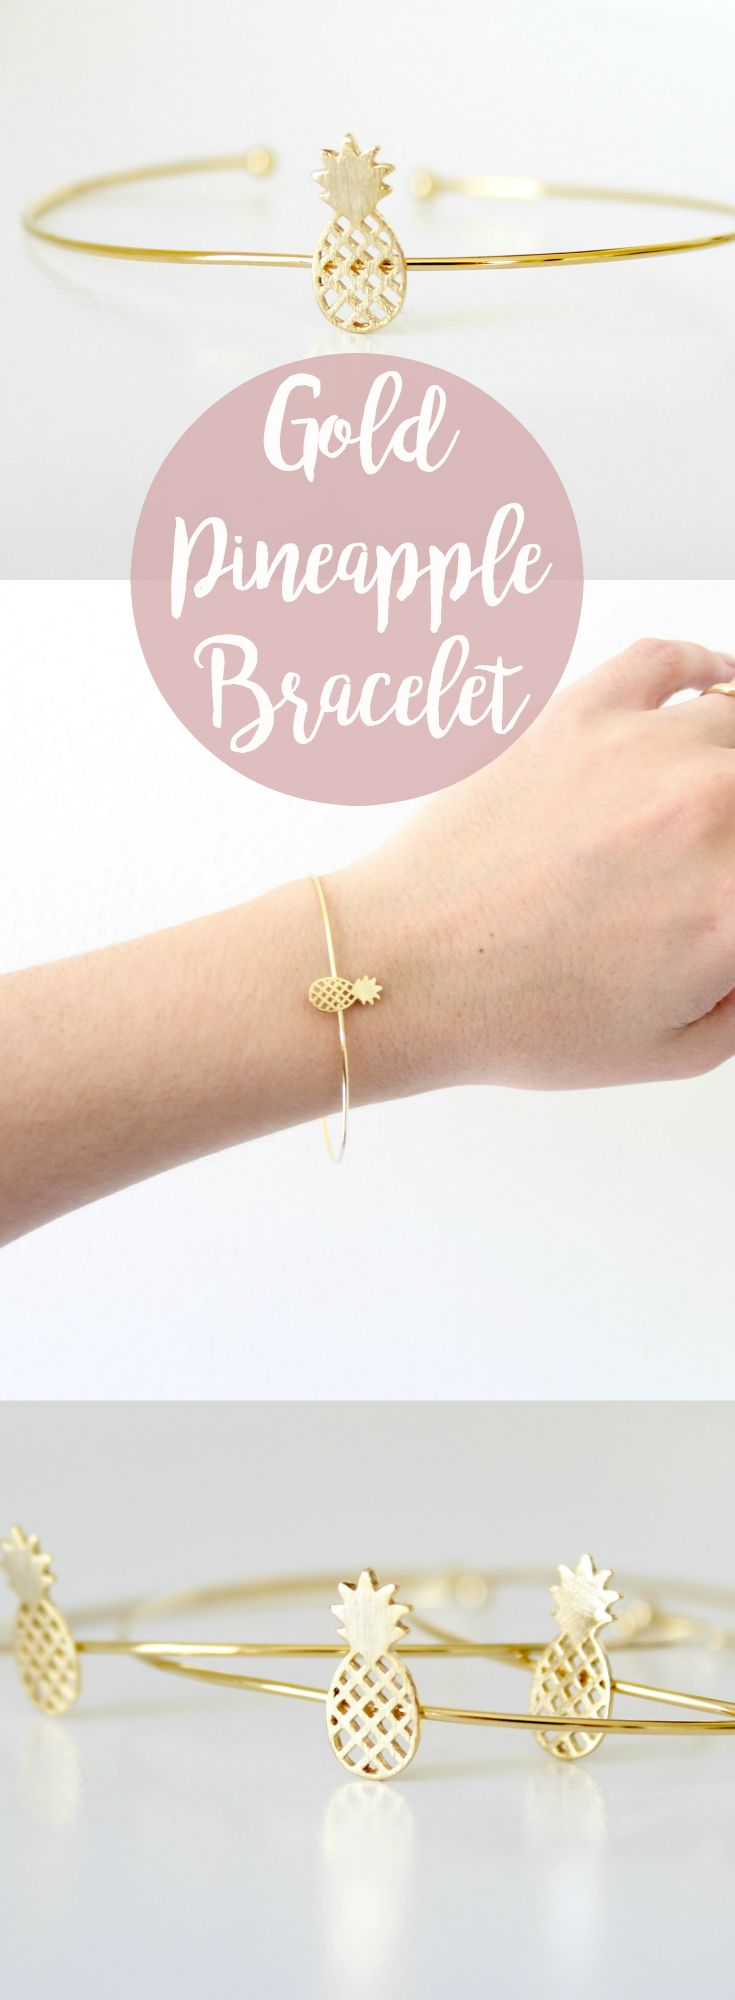 Aloha! Sweet little pineapple bracelet. Perfect minimalist accessory. Or could be perfect for best friend bracelets or gifts! Gold filled and comes packaged in a gift box.   Pineapple jewelry.